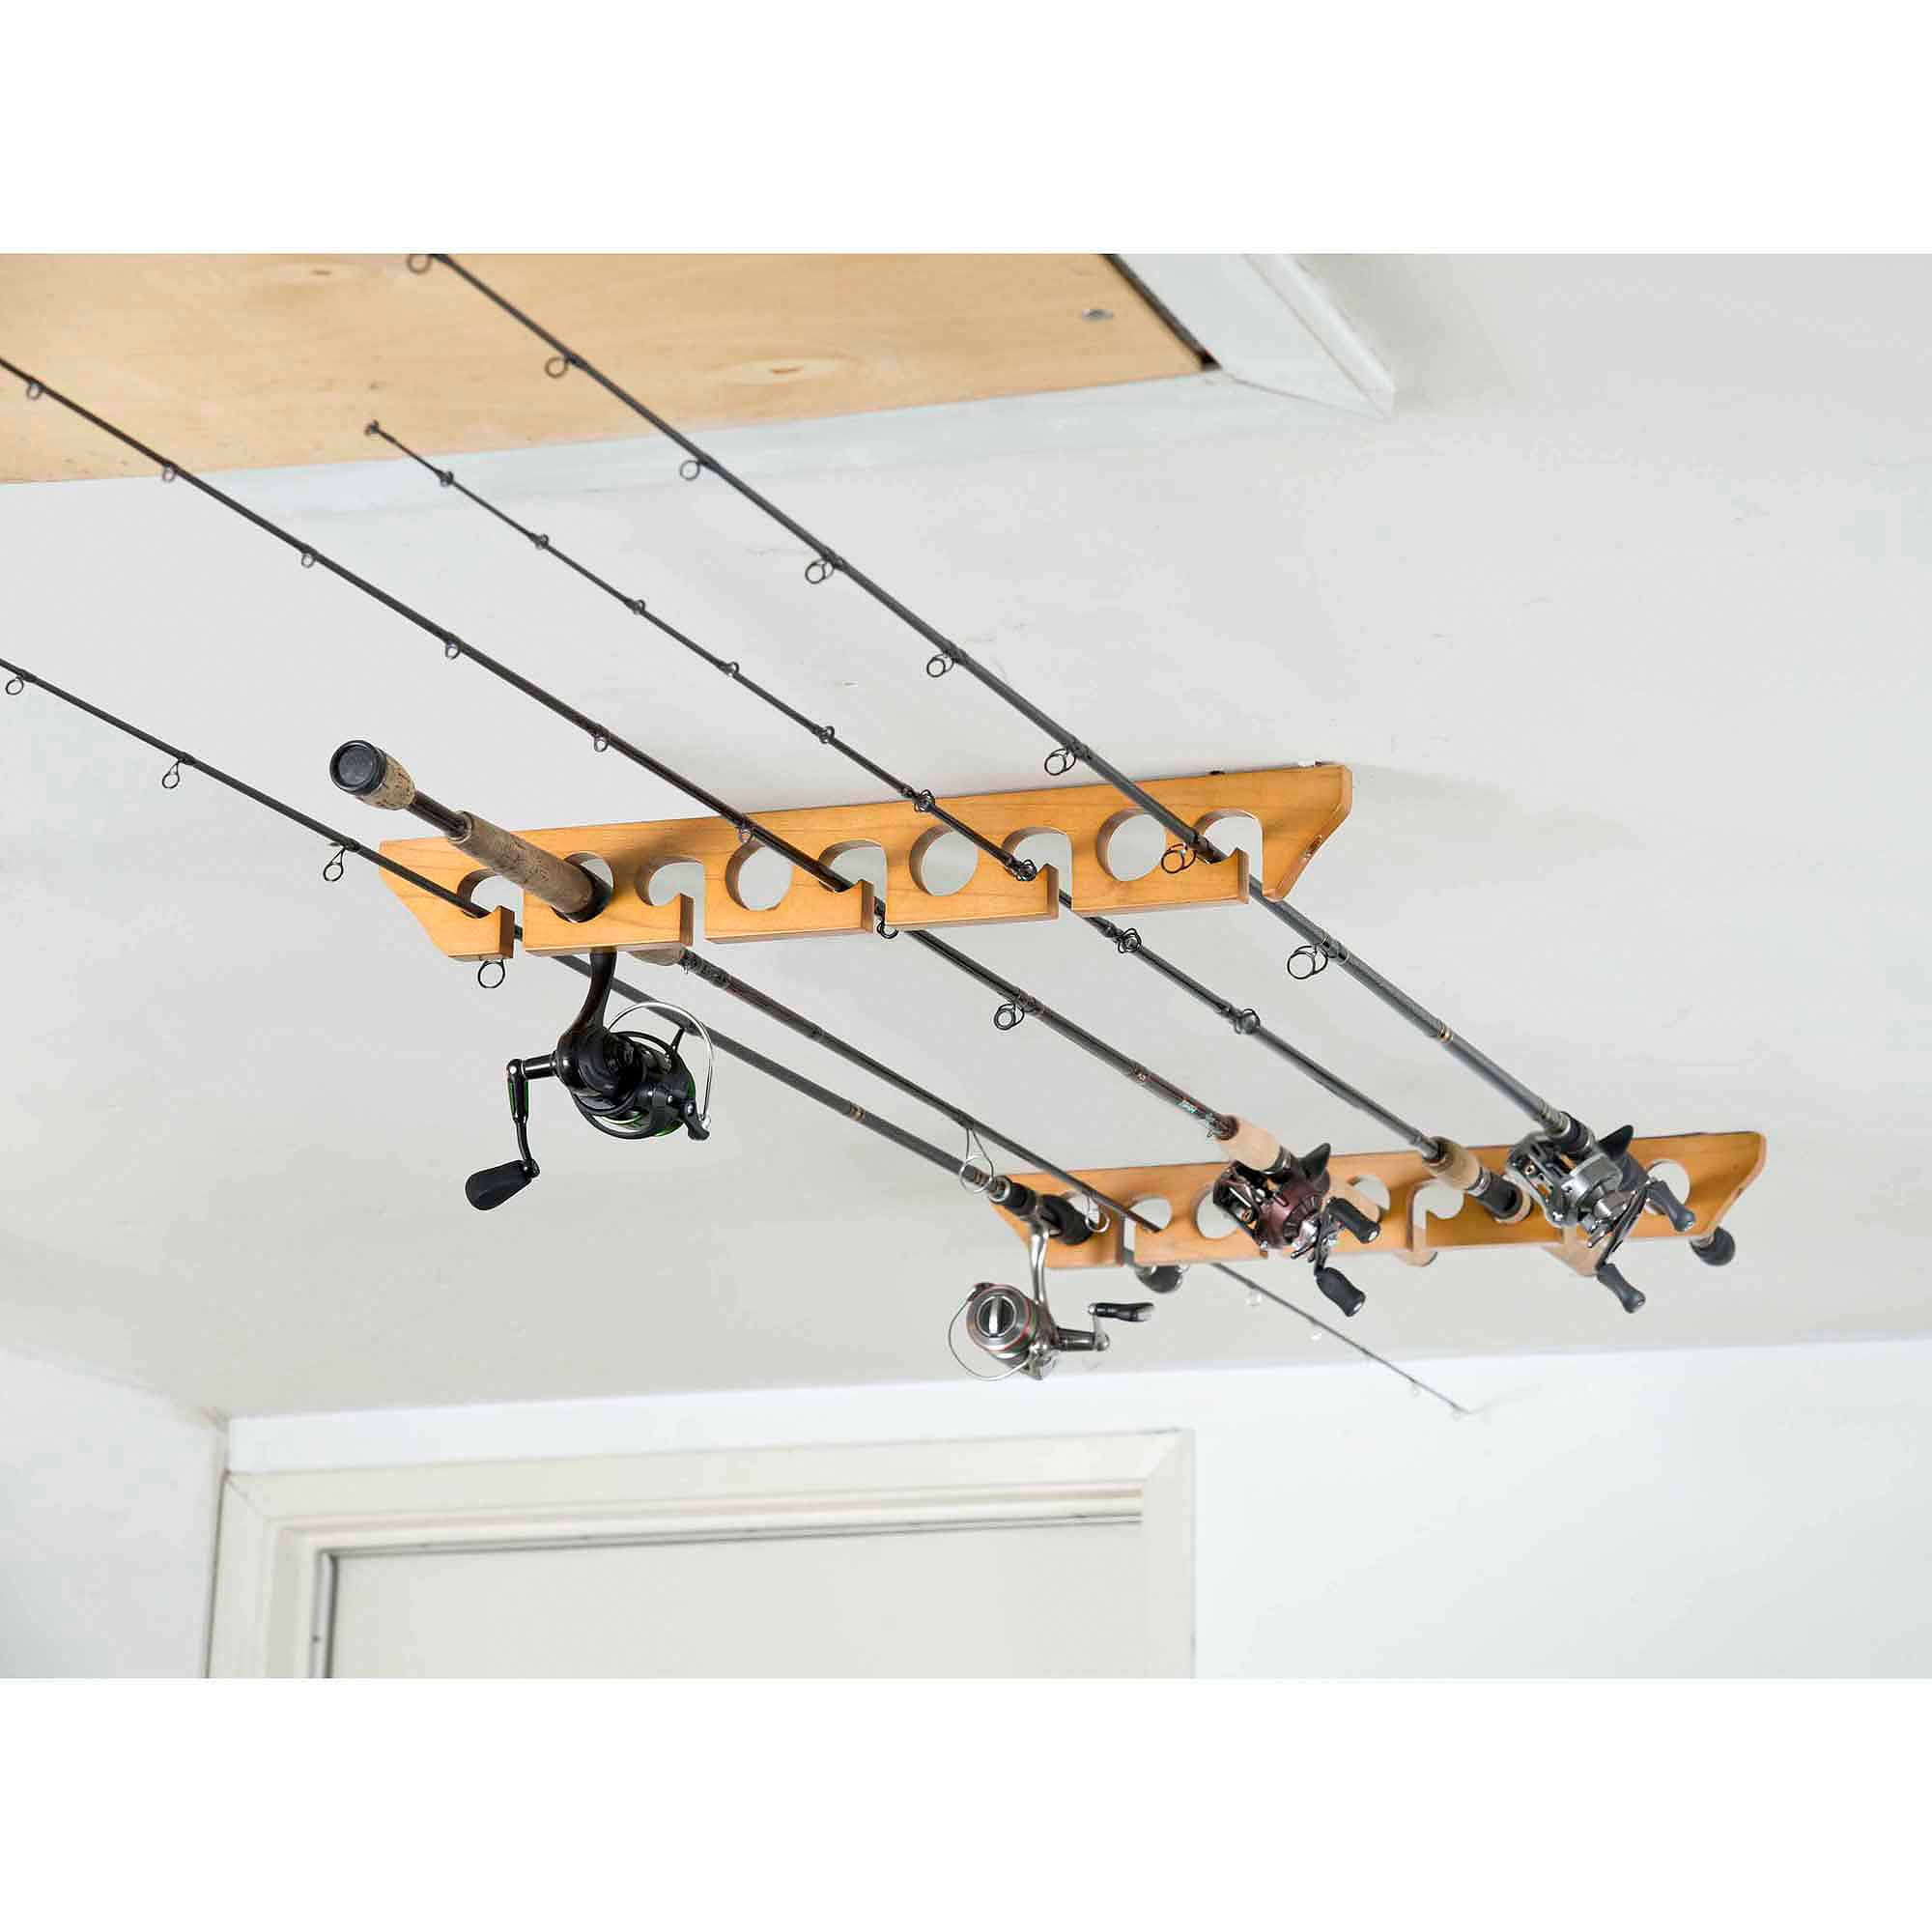 Organized Fishing Wooden Ceiling Horizontal Rod Rack 9